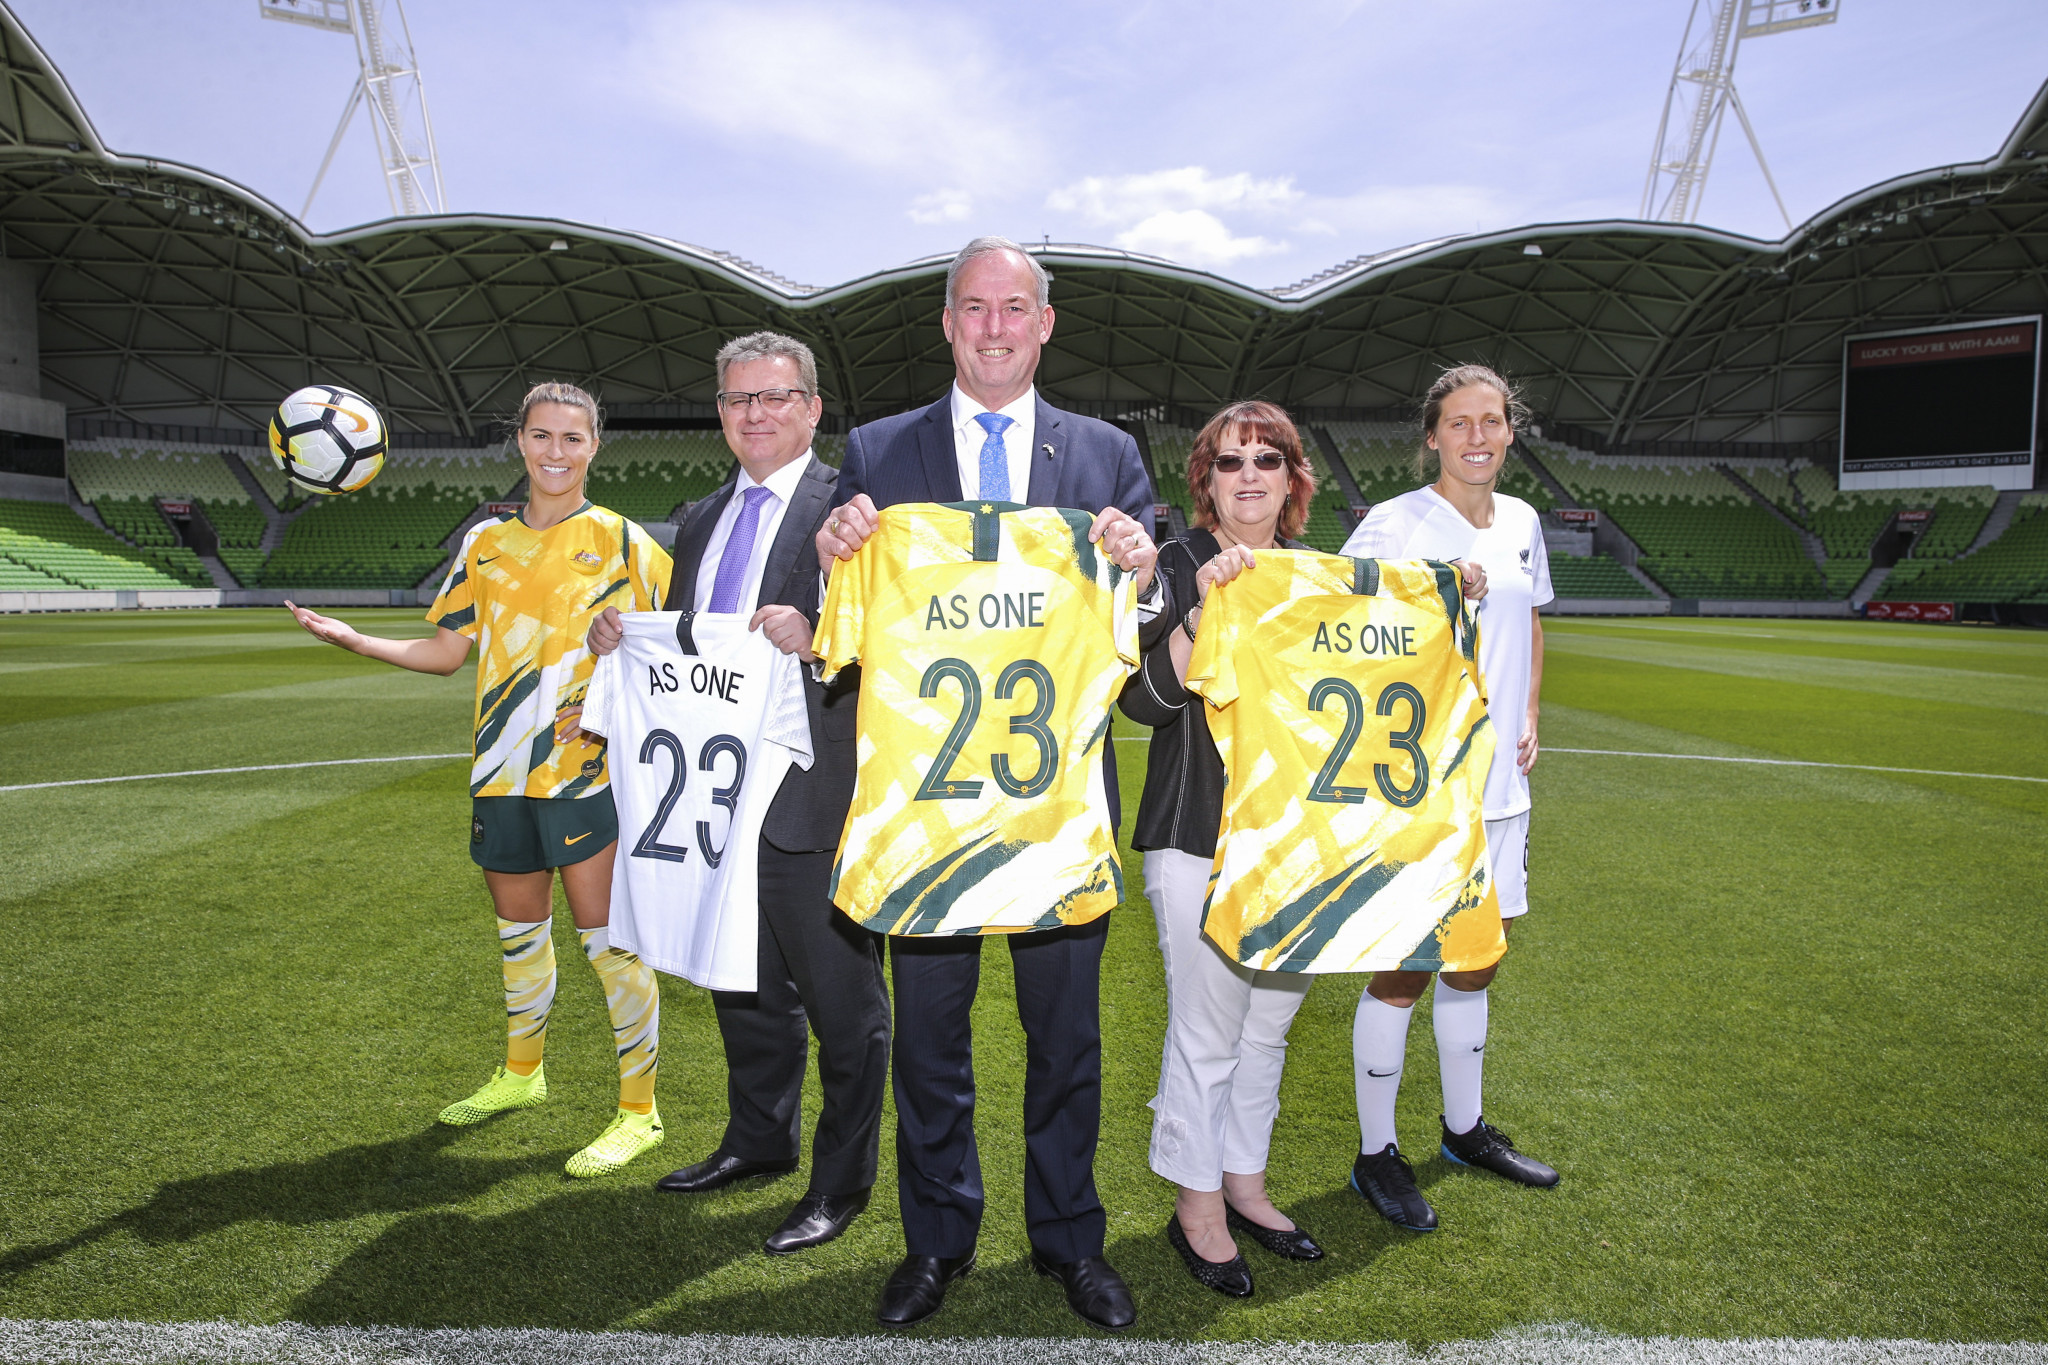 Australia and New Zealand's bid was the best performer in the evaluation report published by FIFA ©Getty Images